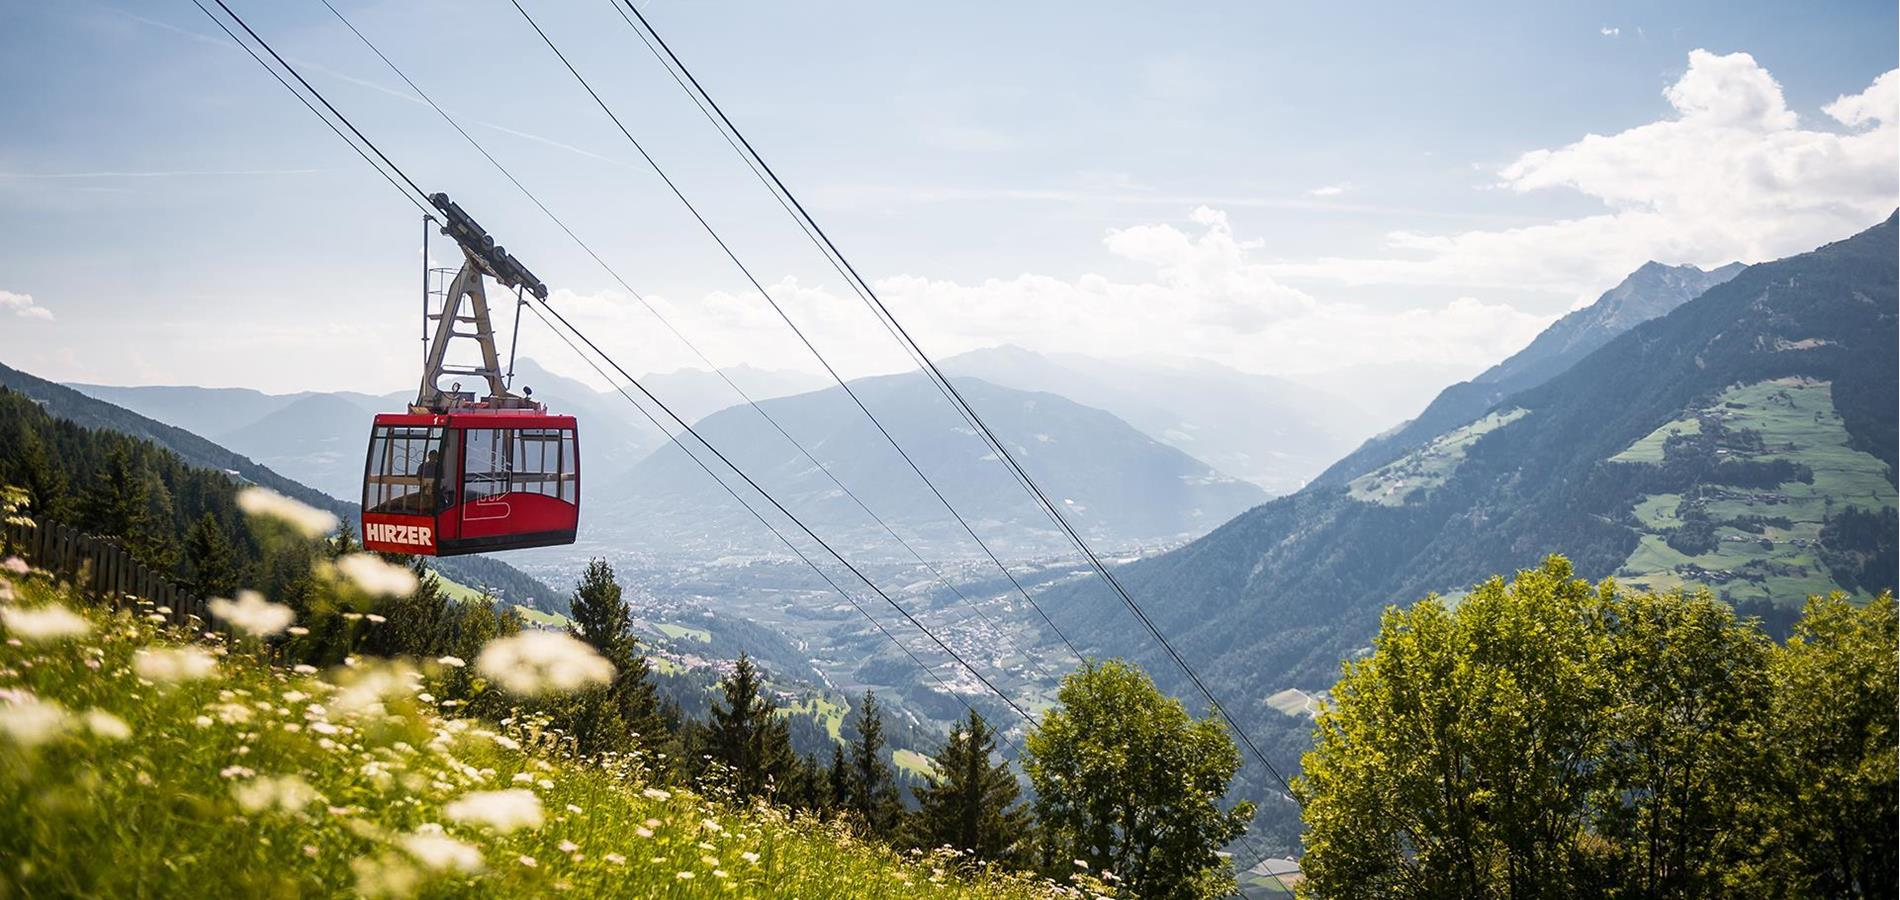 The Cableways and Chairlifts of Scena